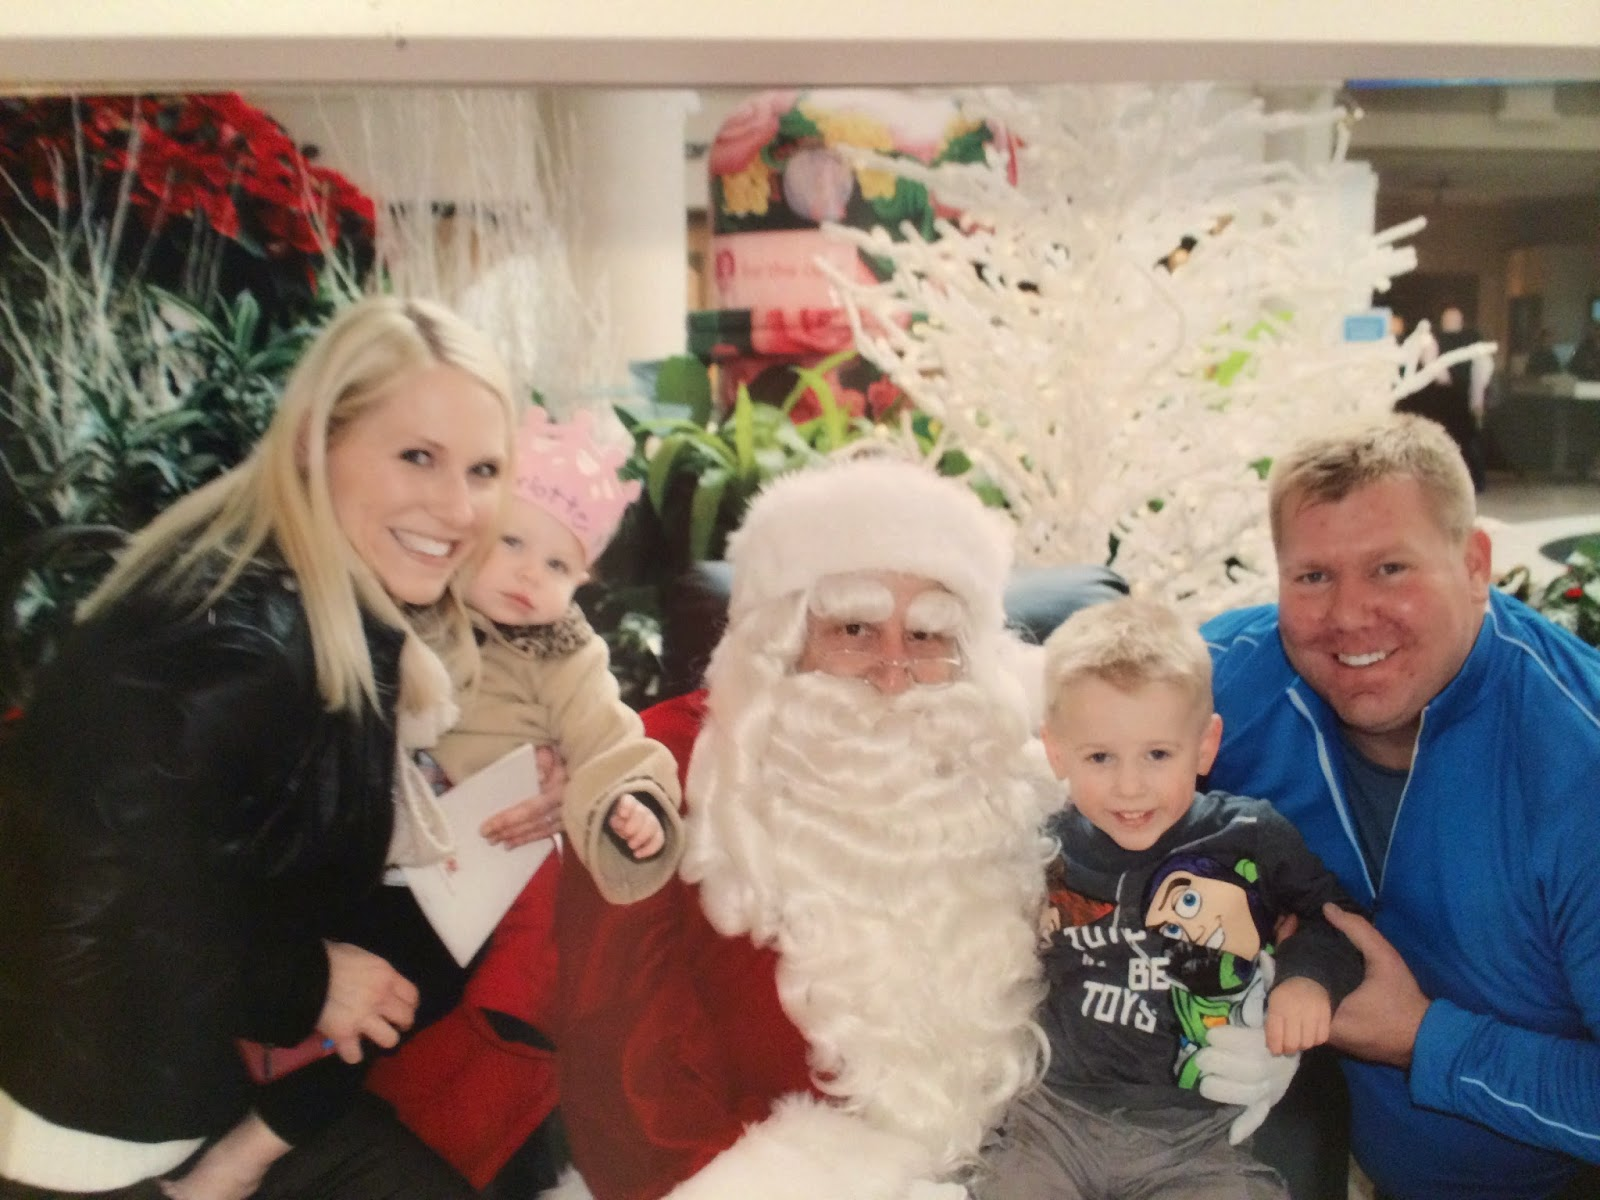 Family photo with Santa at Abt in Glenview!